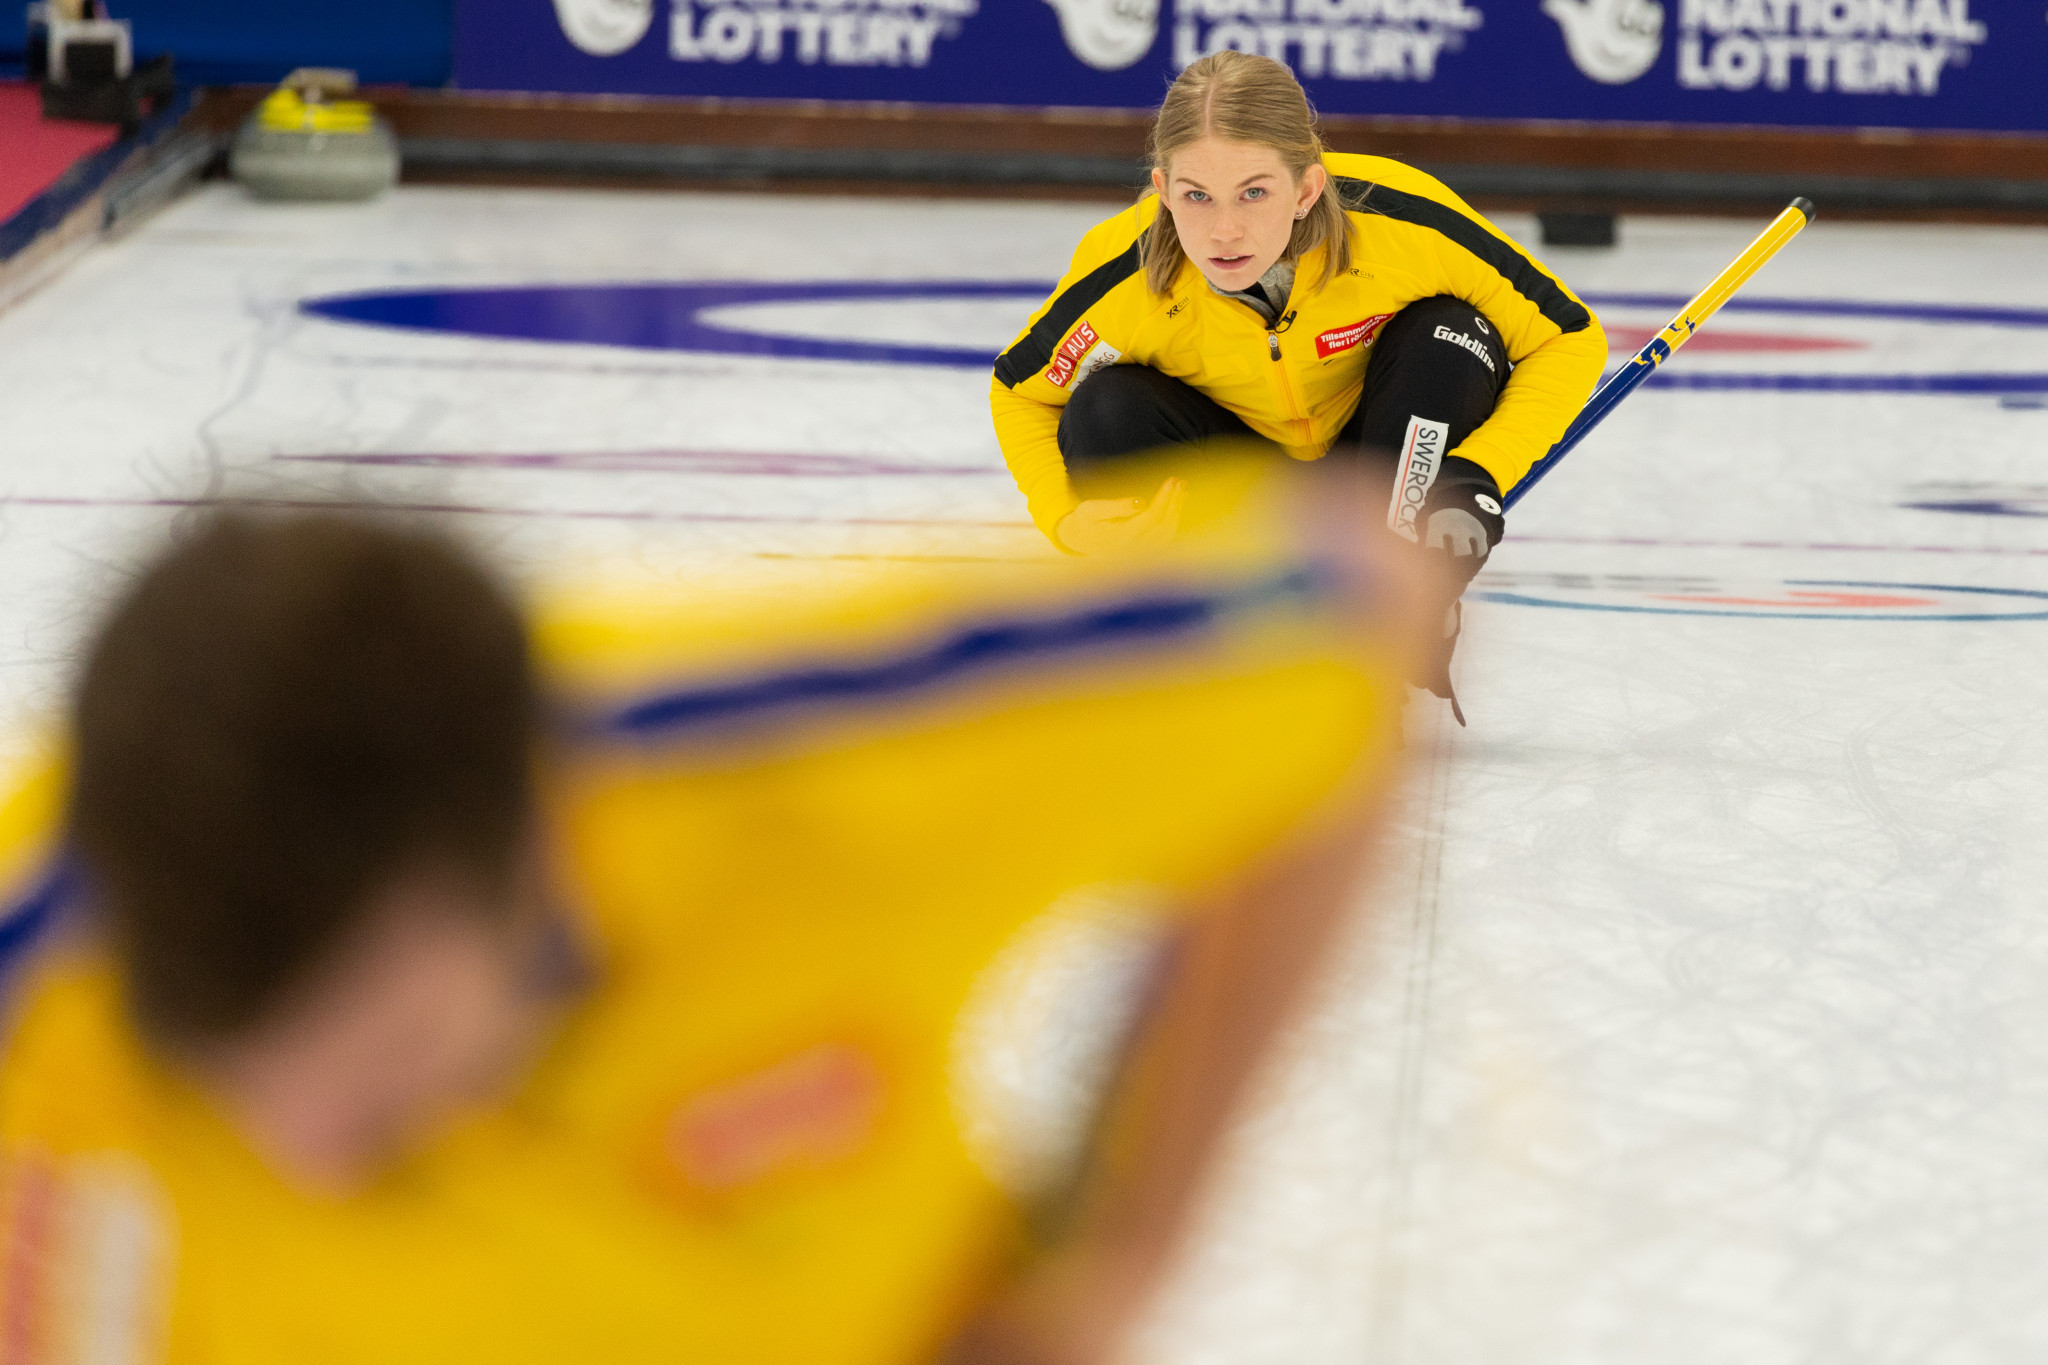 Swedes and Scots make winning starts at World Mixed Doubles Curling Championship